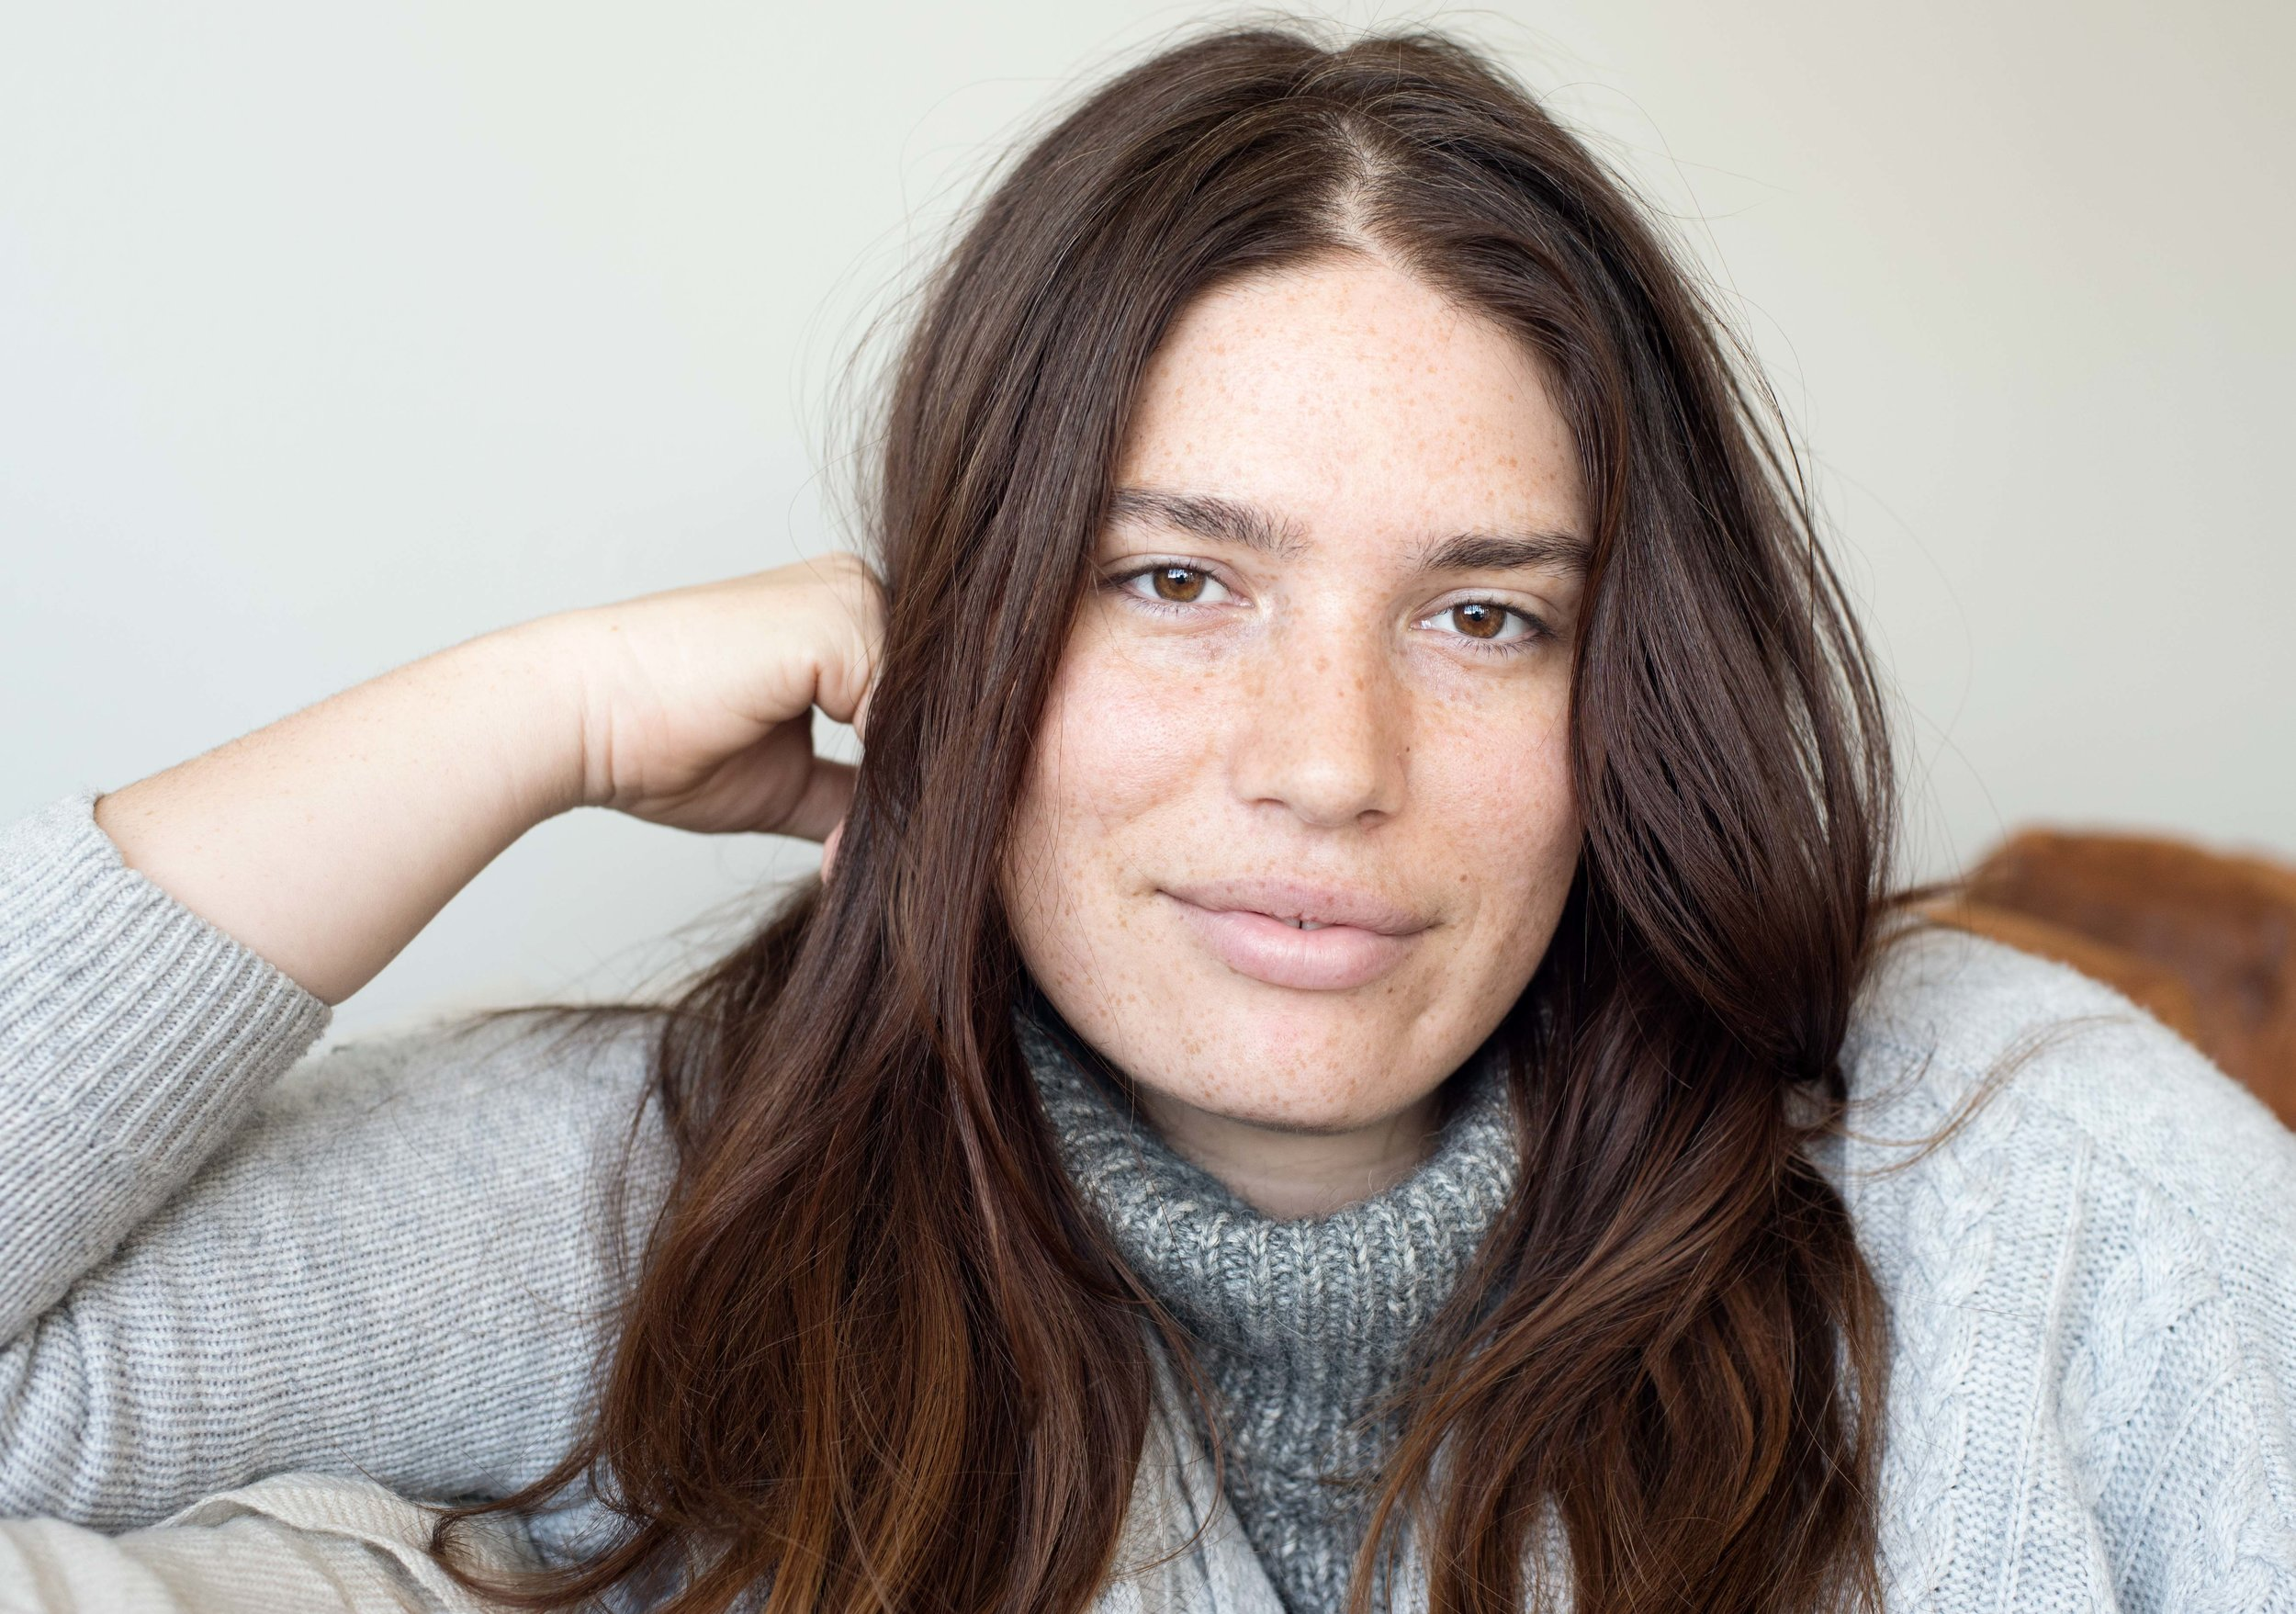 clementine desseaux   Entrepreneur, model and co-founder of All Woman Project, Long Island City